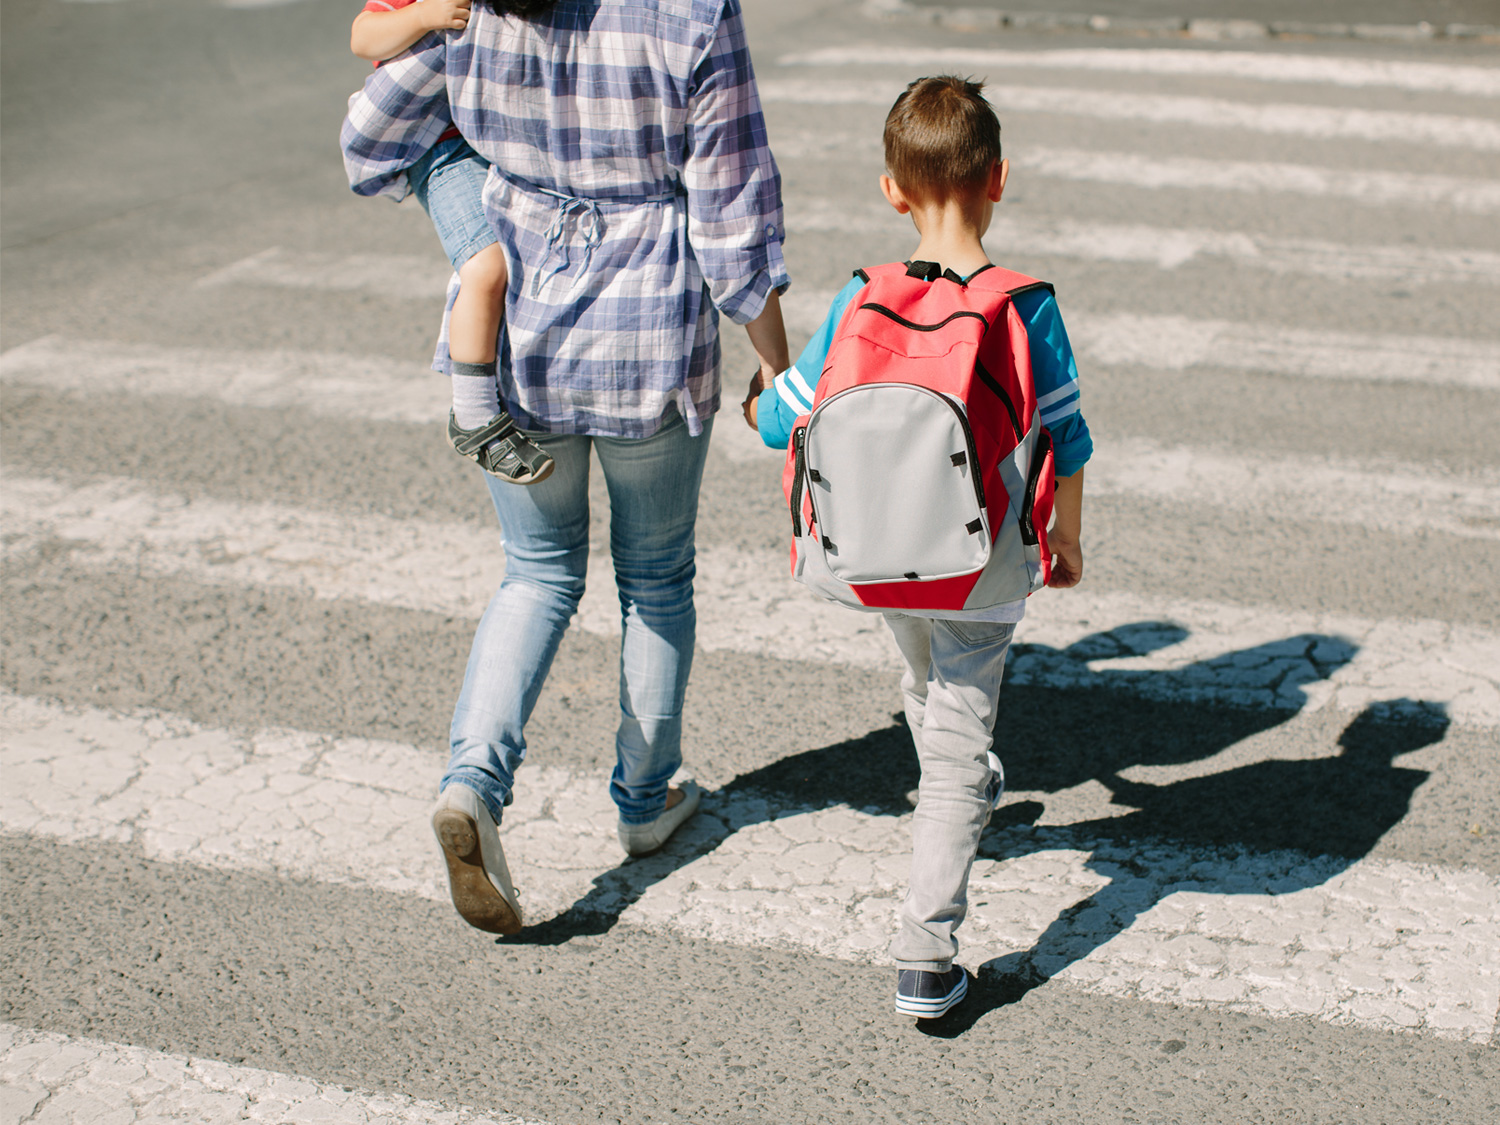 6 Rules For School Safety